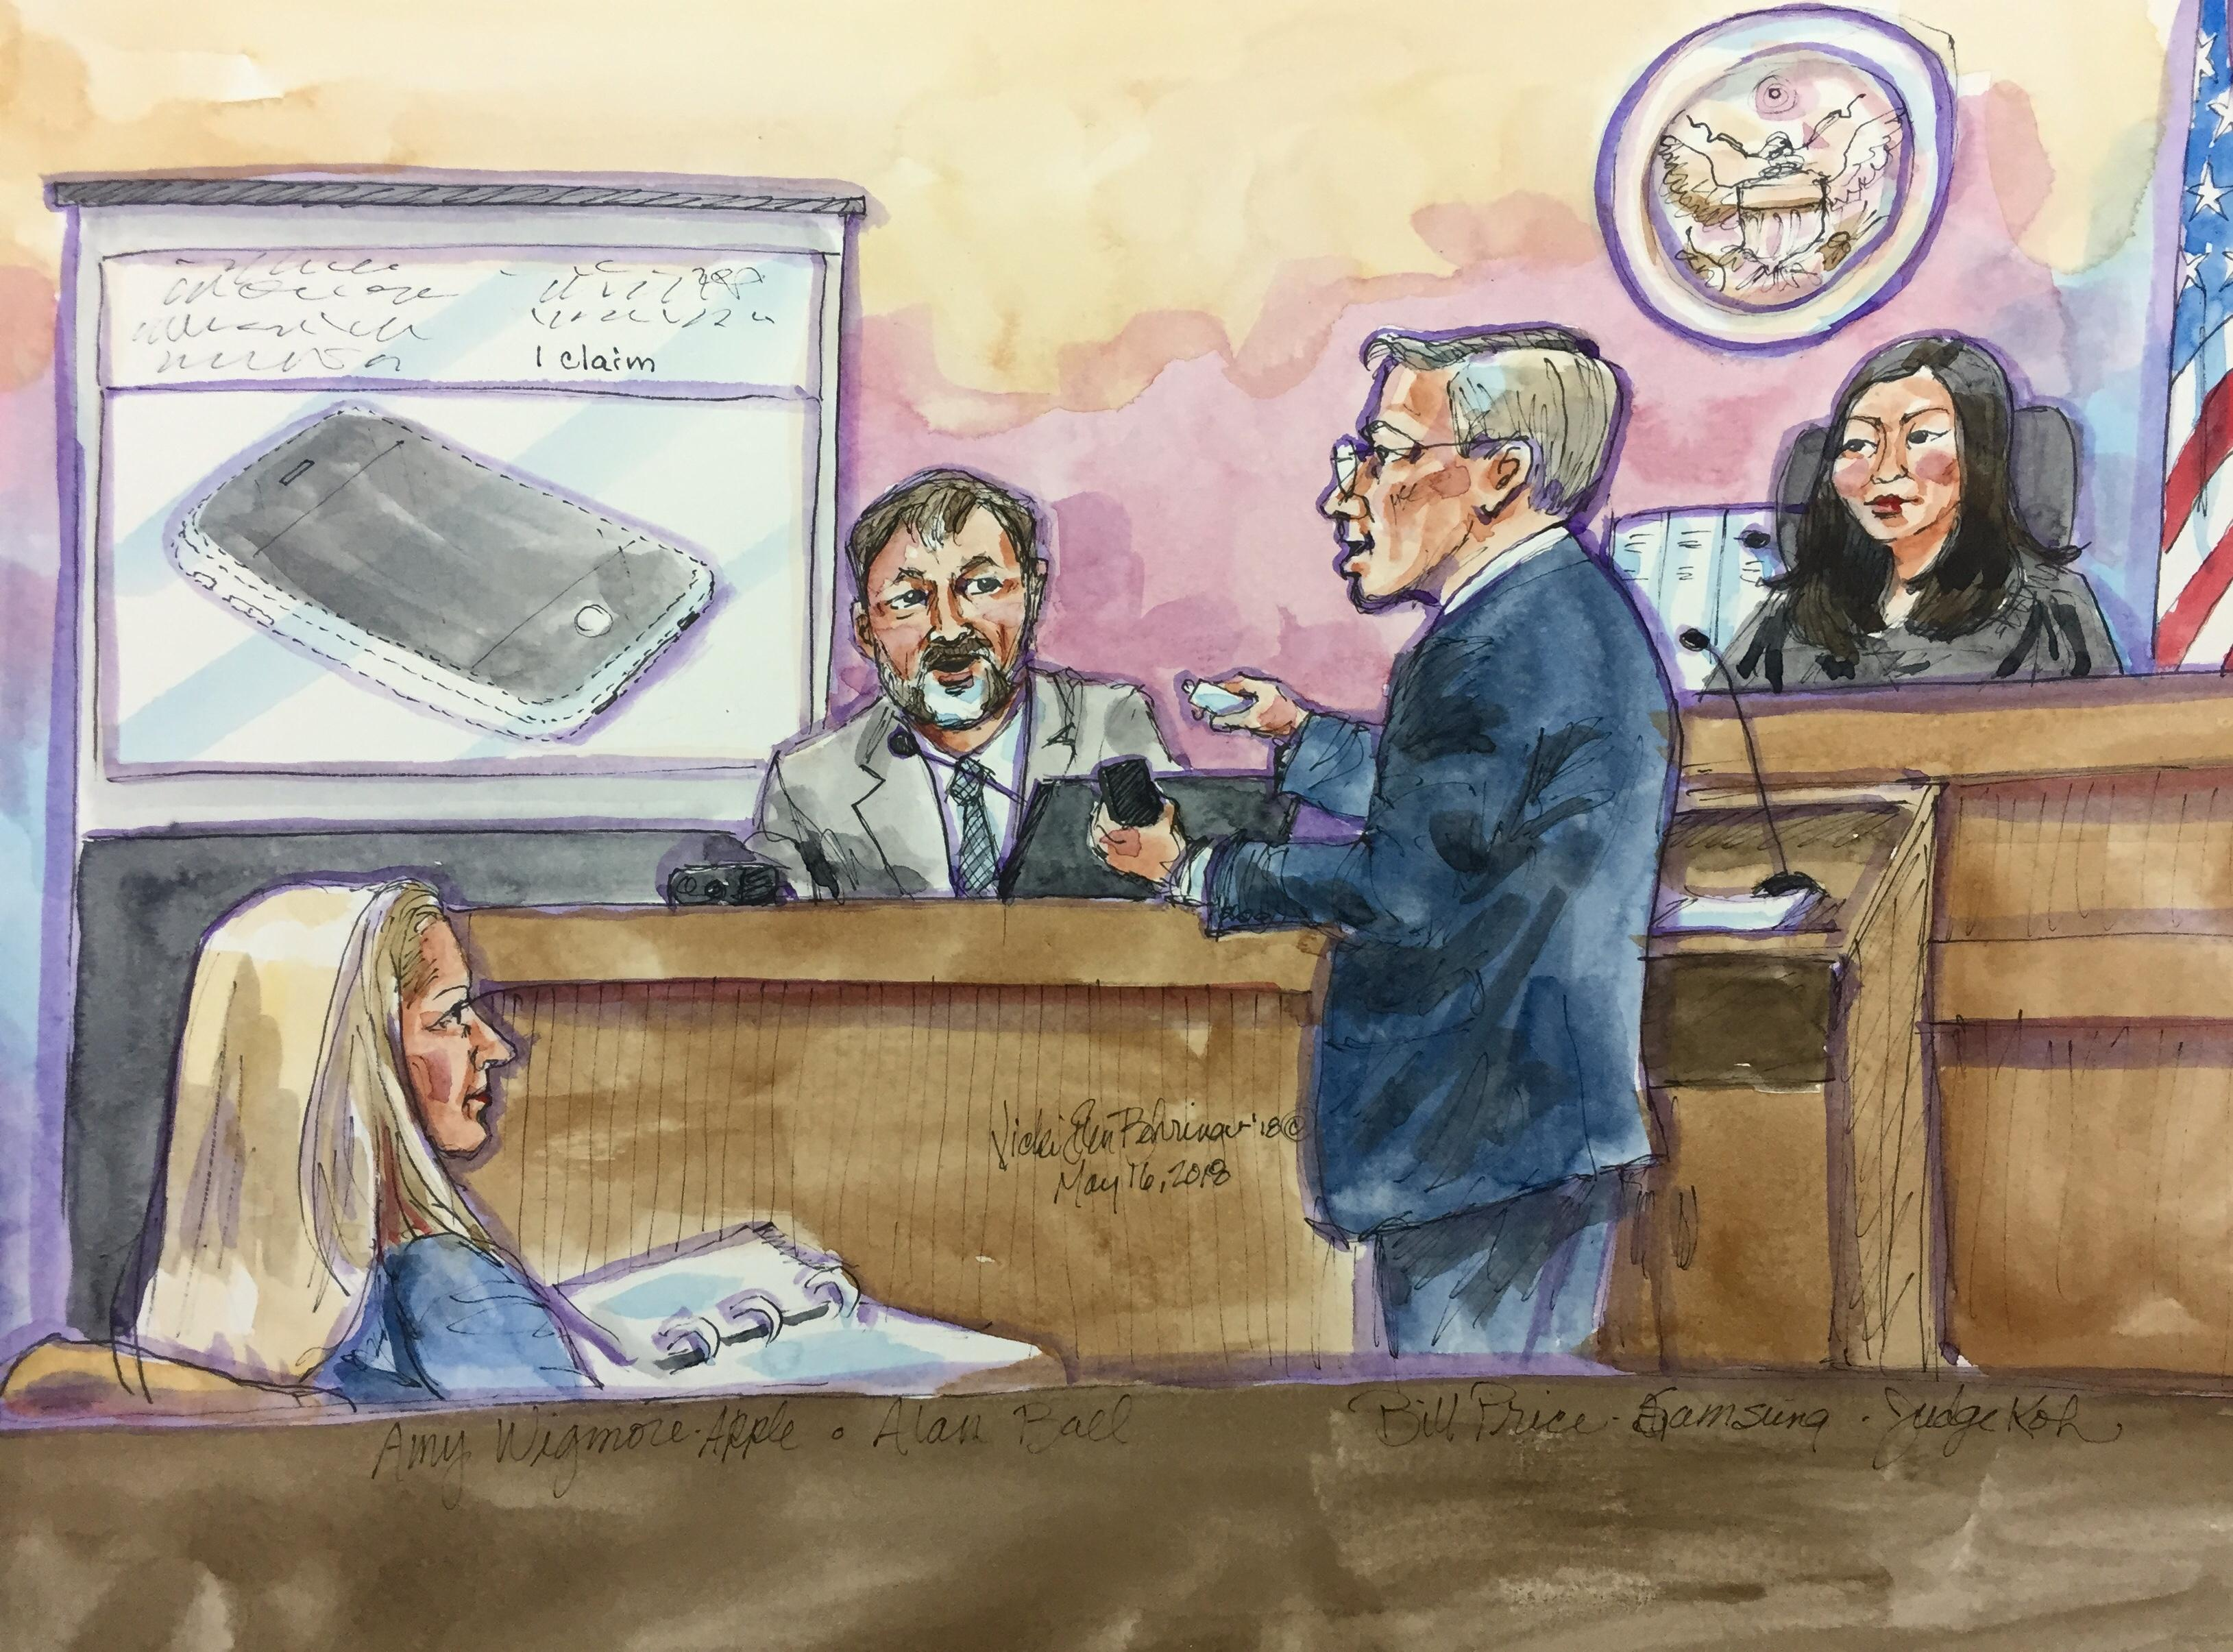 Alan Ball, an independent industrial designer, testifies in US Northern California District Court in San Jose about Apple iPhone design patents Samsung was found to infringe.